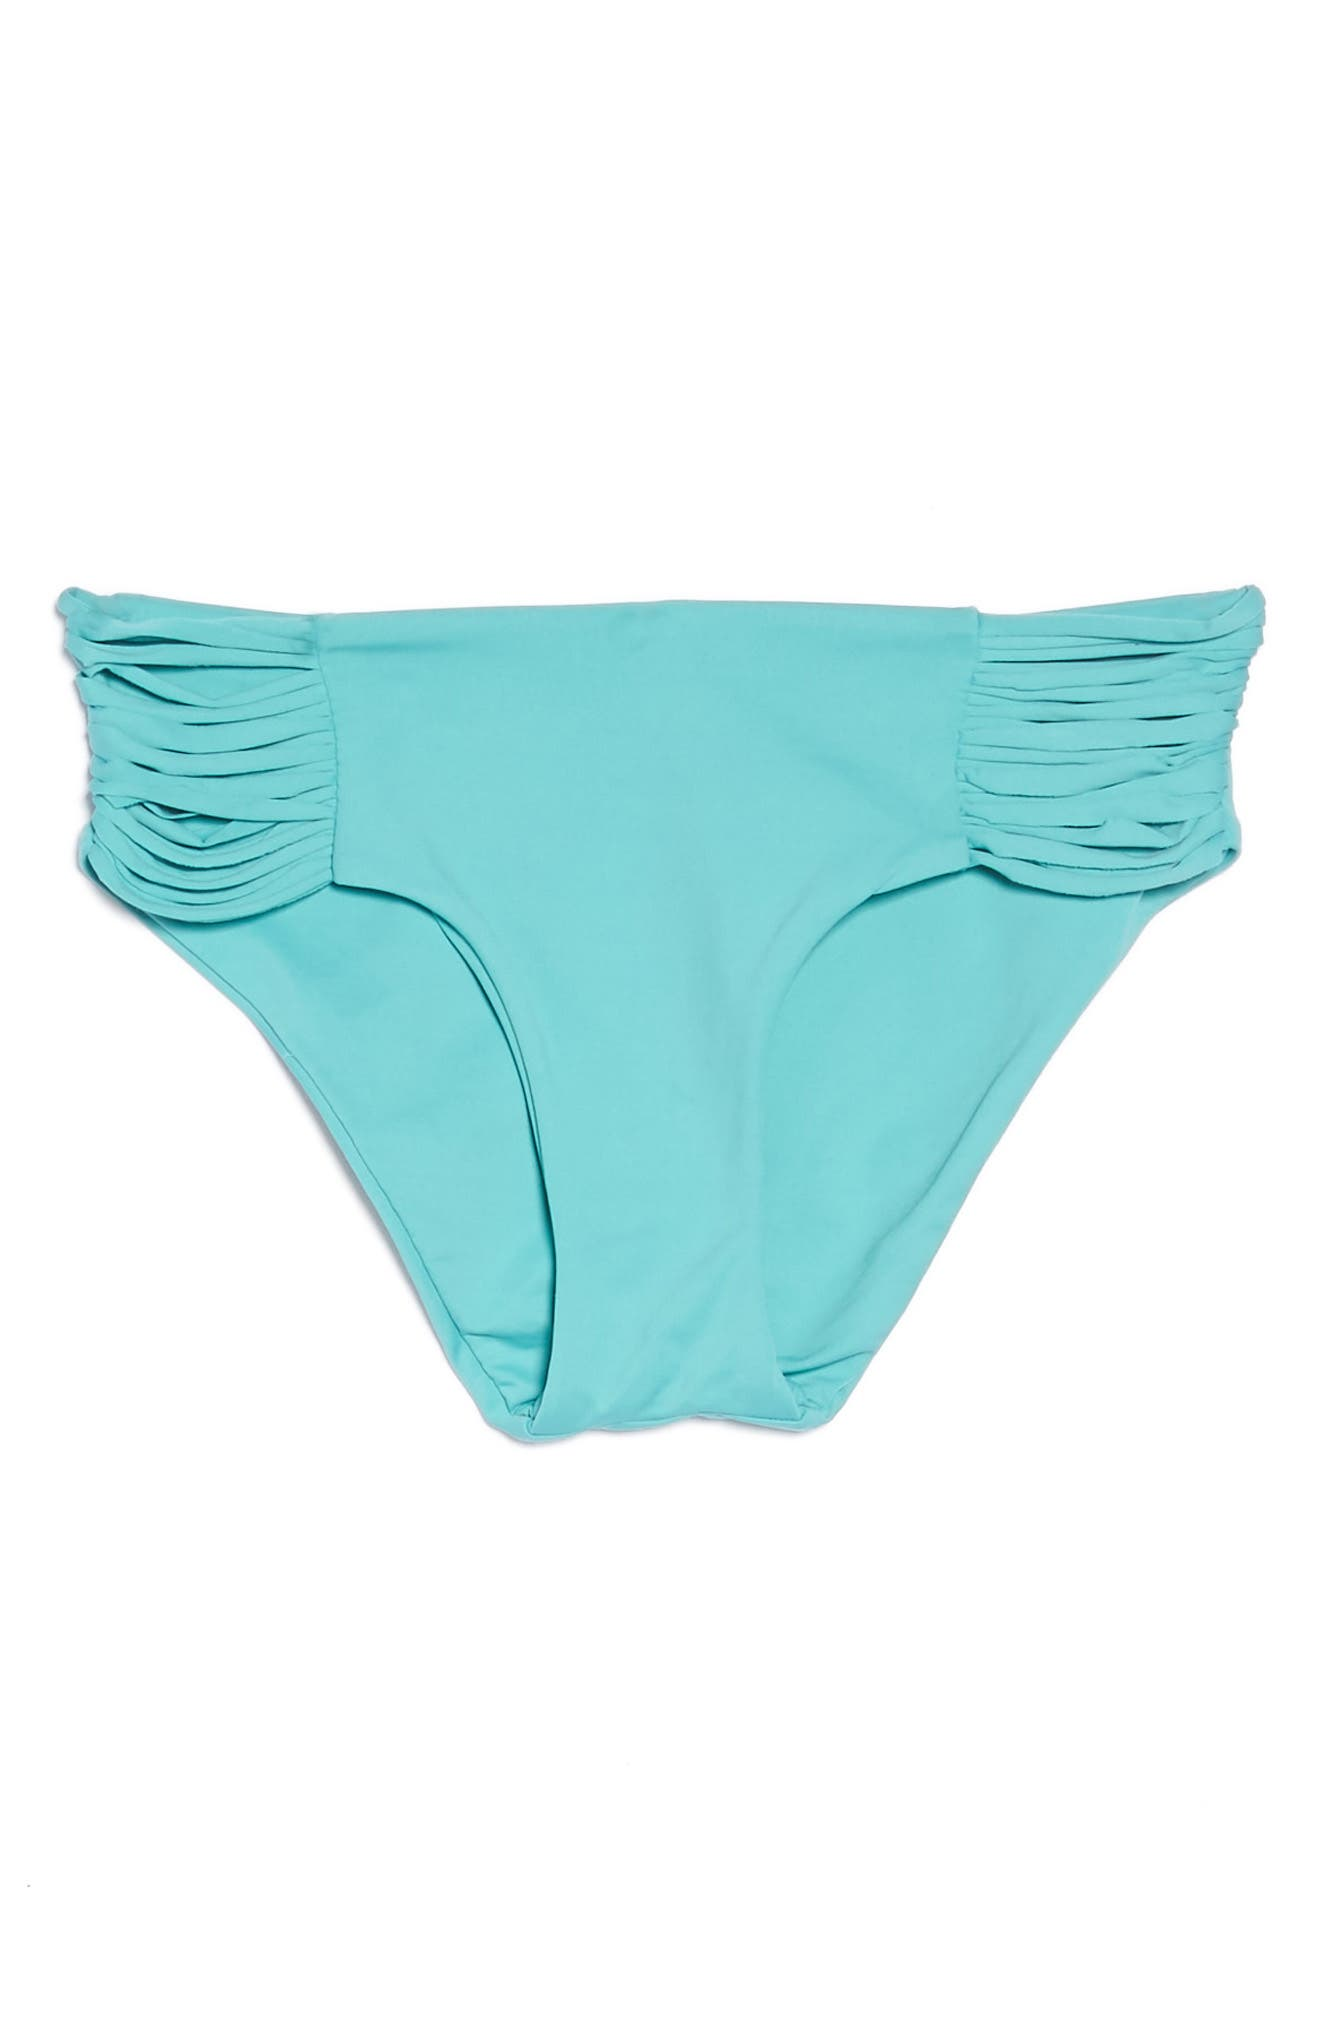 Beach Solids Maui Bikini Bottoms,                             Alternate thumbnail 6, color,                             300